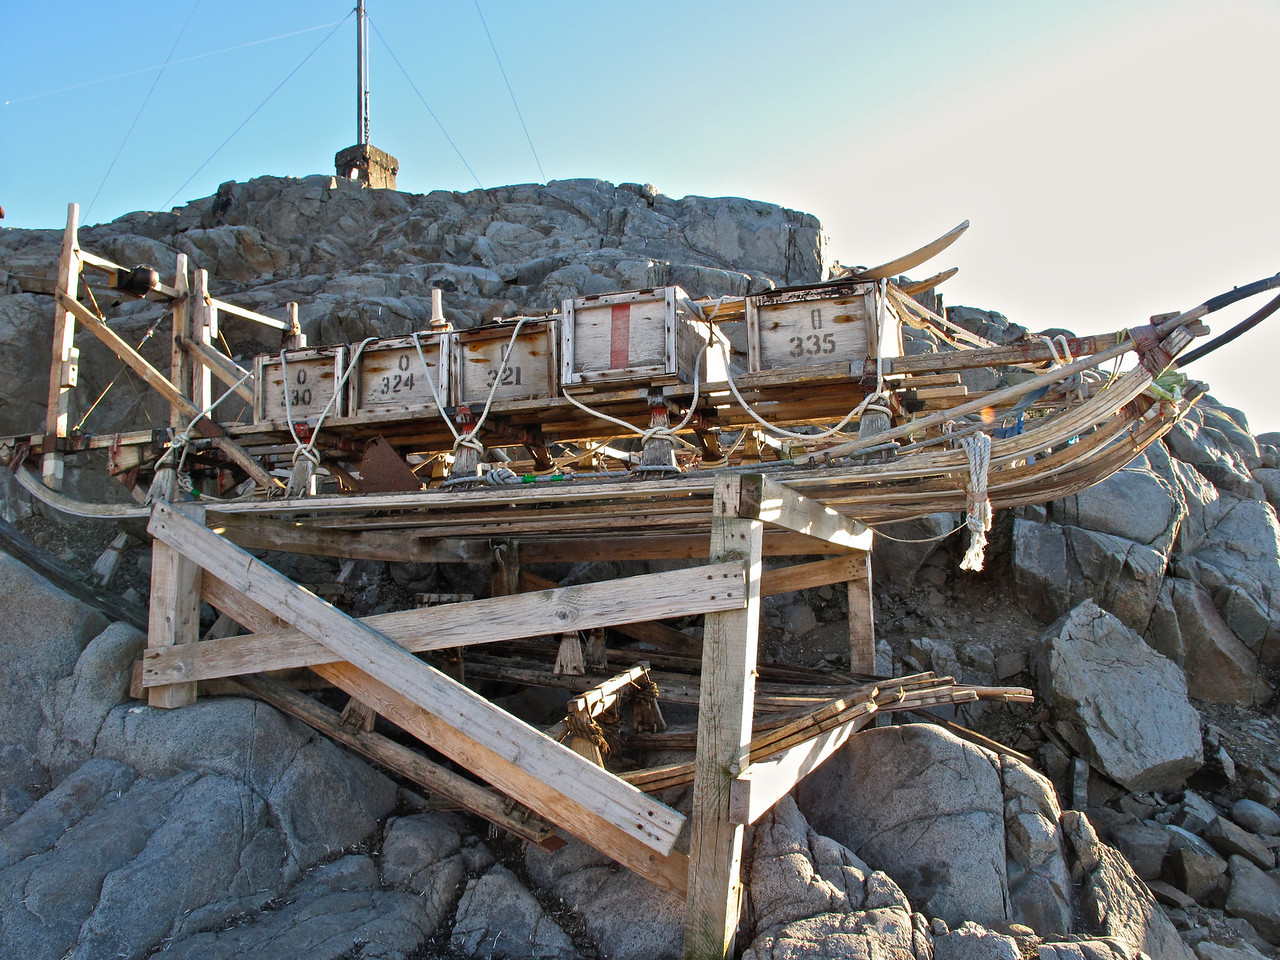 This is a preserved dog sled that was used to transport materials around the base area.